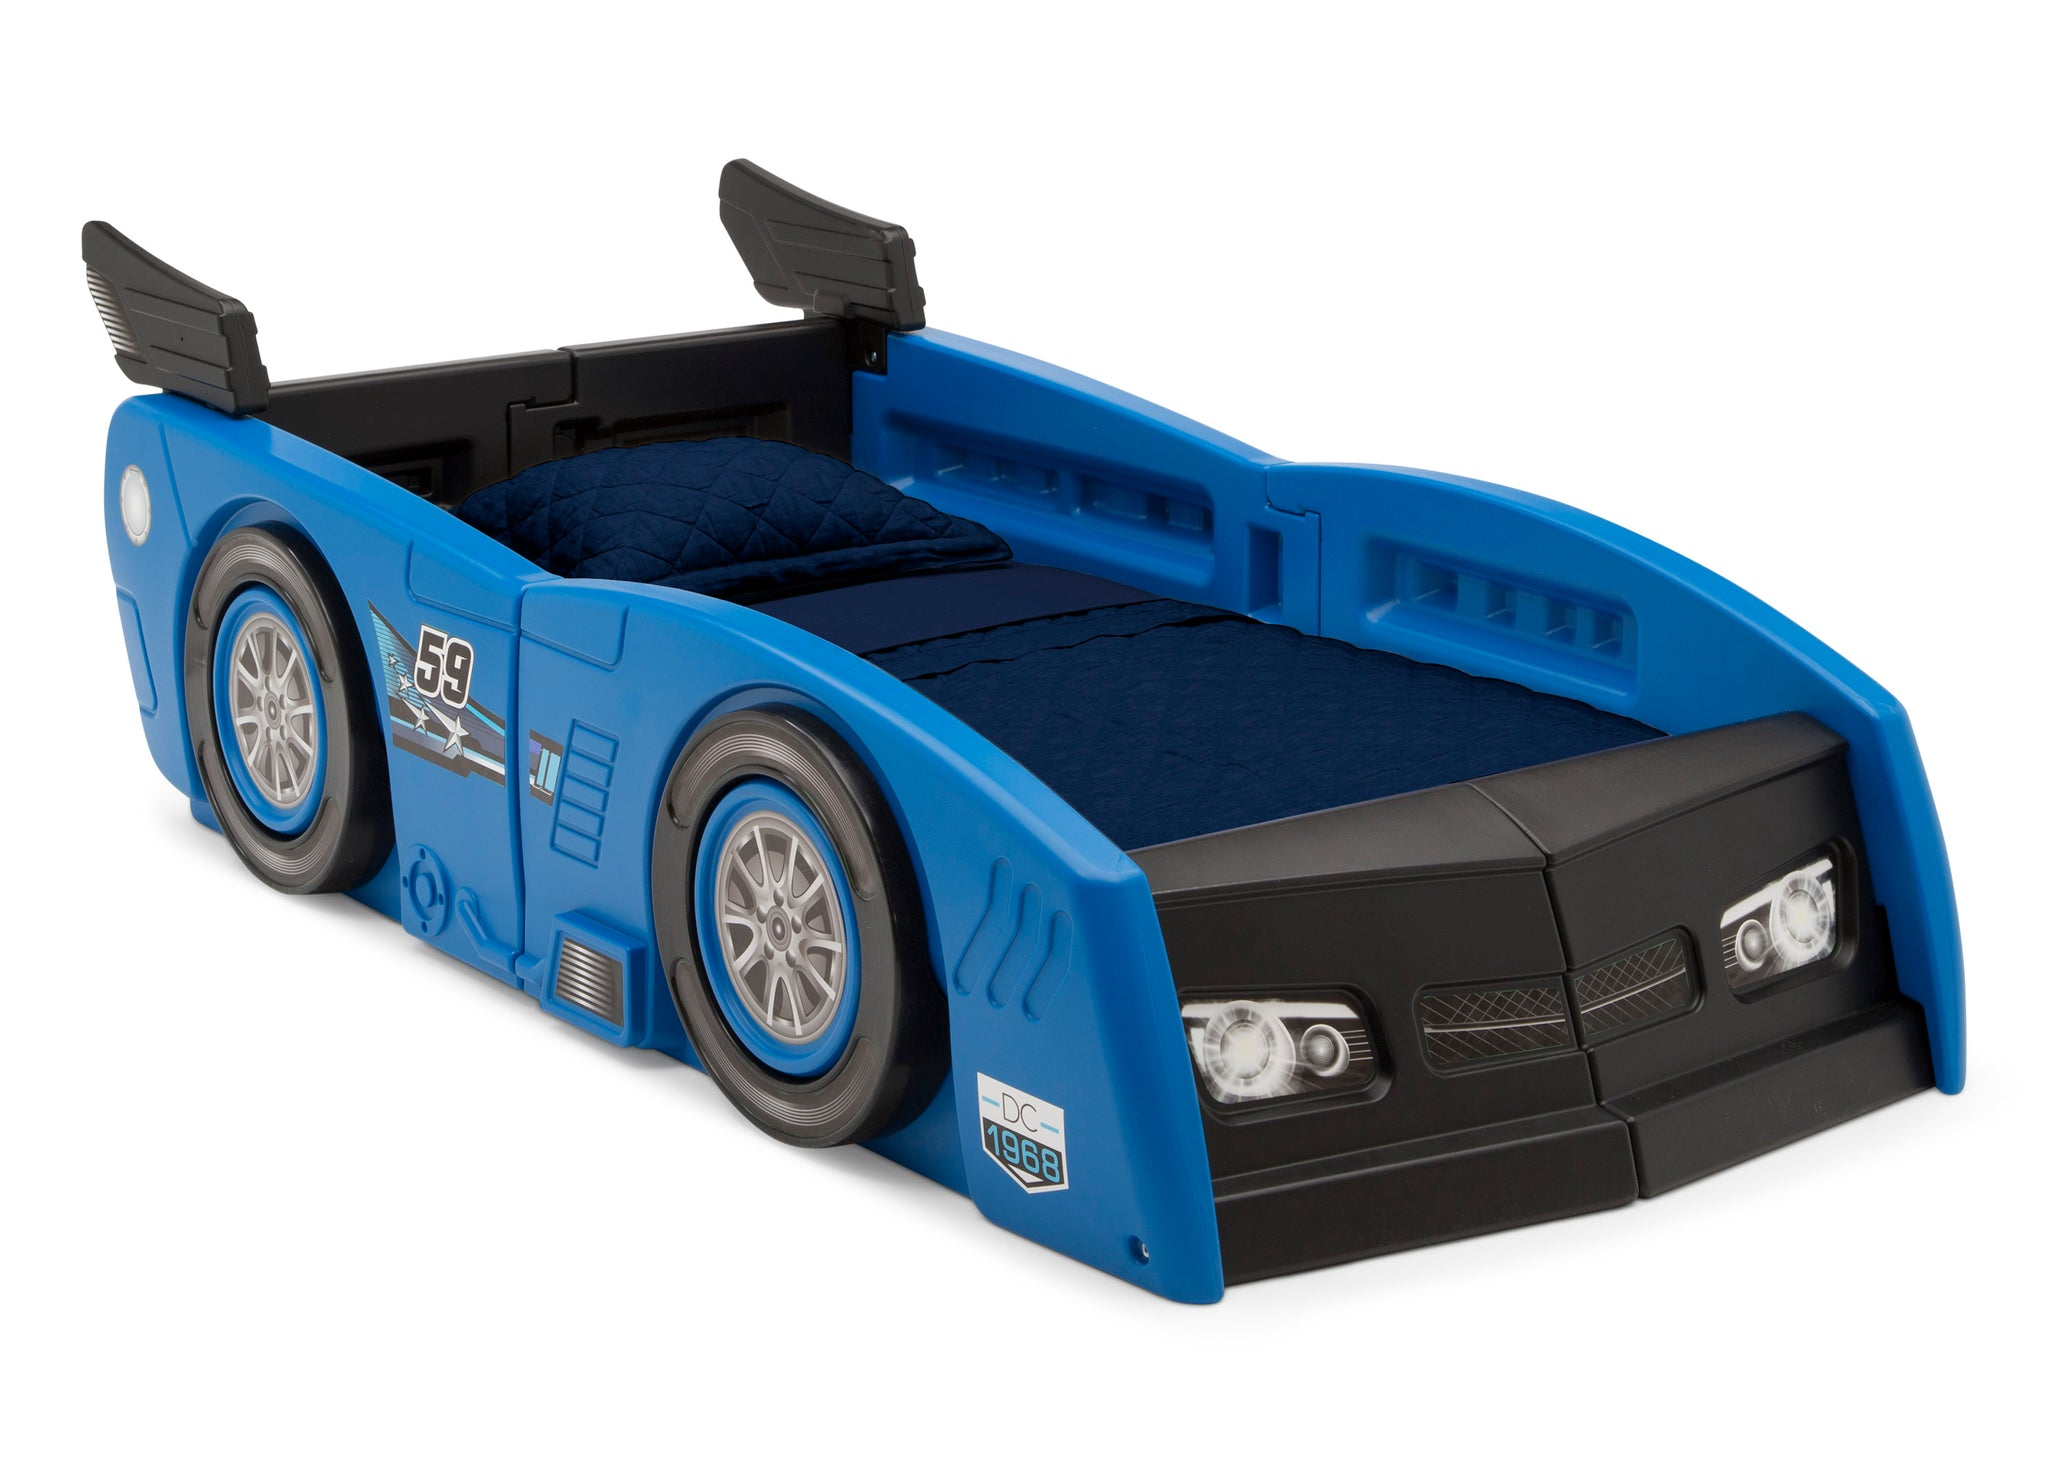 Delta Children Blue & Black (485) Grand Prix Race Car Toddler-to-Twin Bed, Toddler Right Silo View